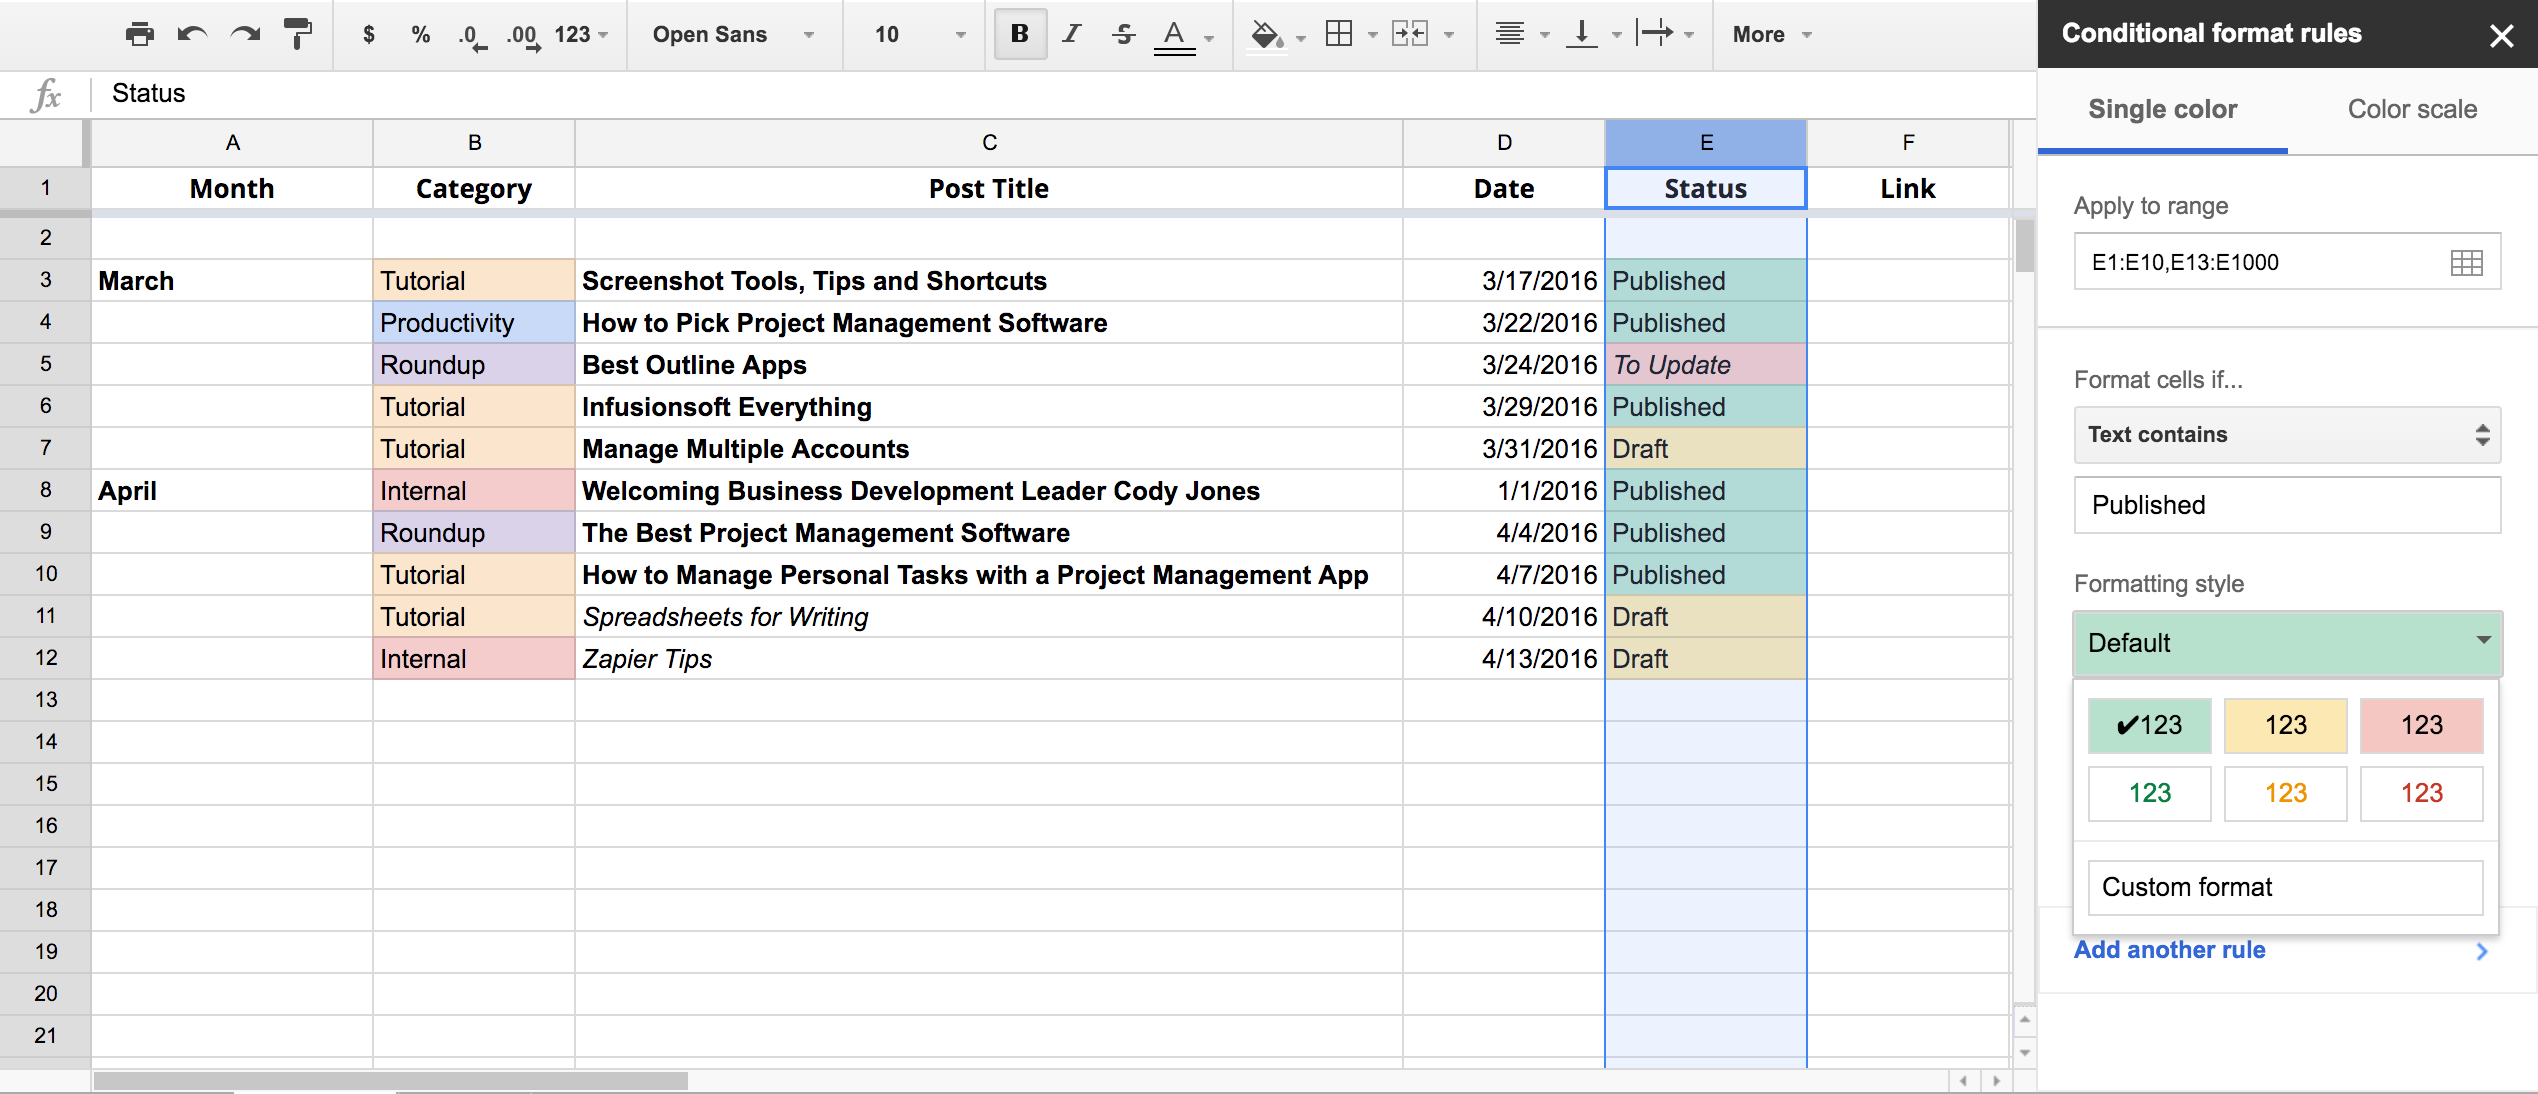 Html Spreadsheet Intended For Write Faster With Spreadsheets: 10 Shortcuts For Composing Outlines